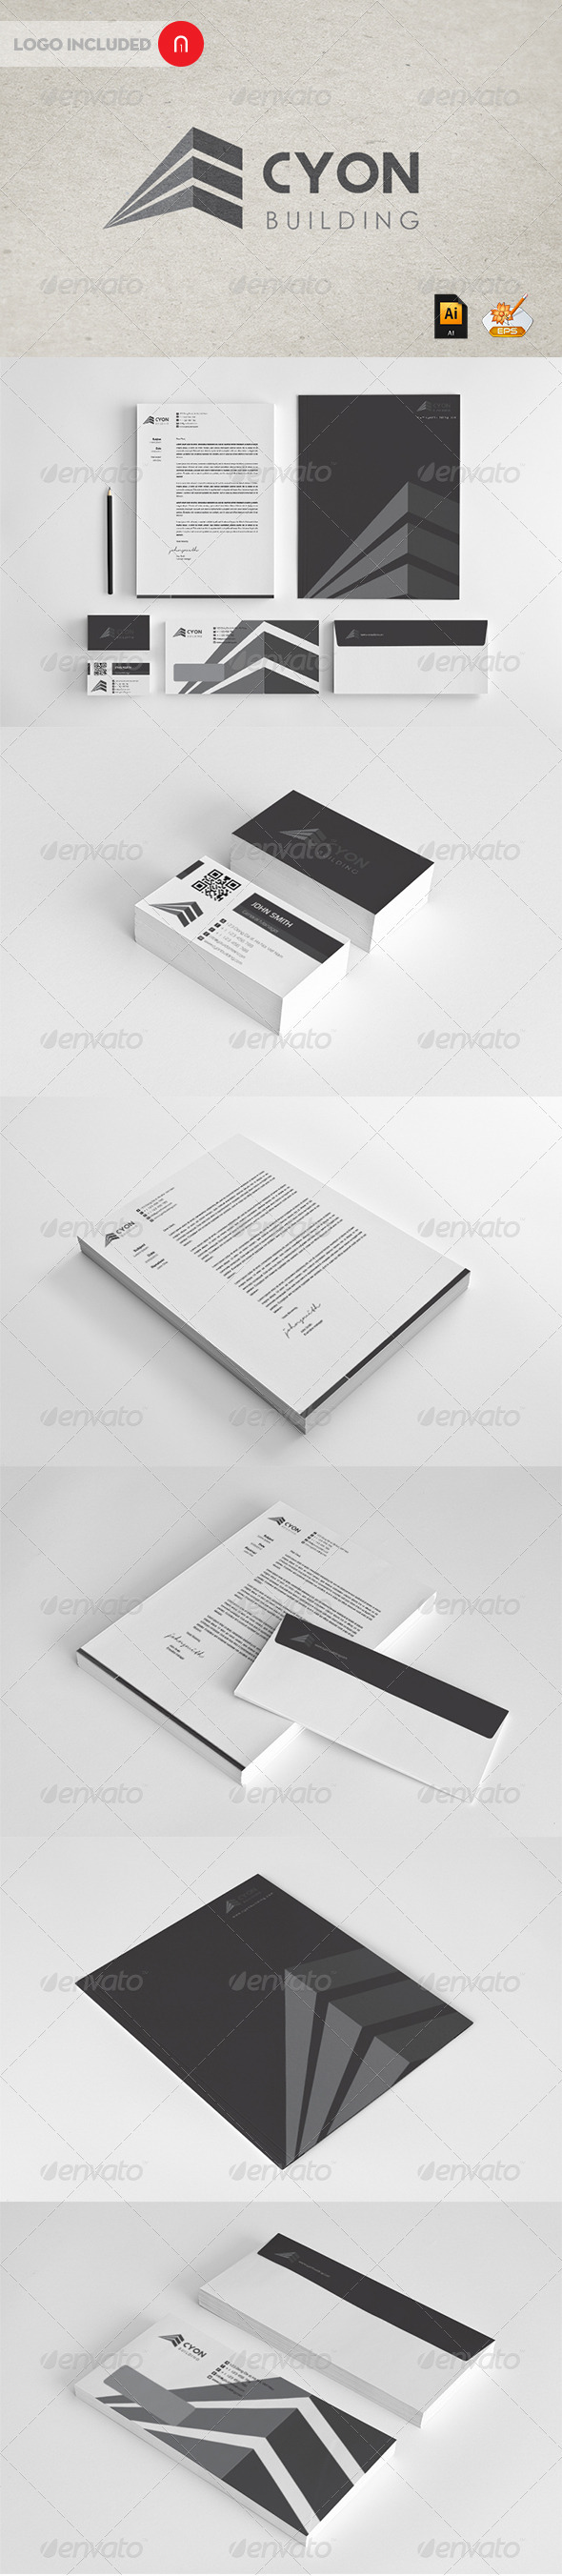 GraphicRiver Cyon building professional Corporate Identity 2676640